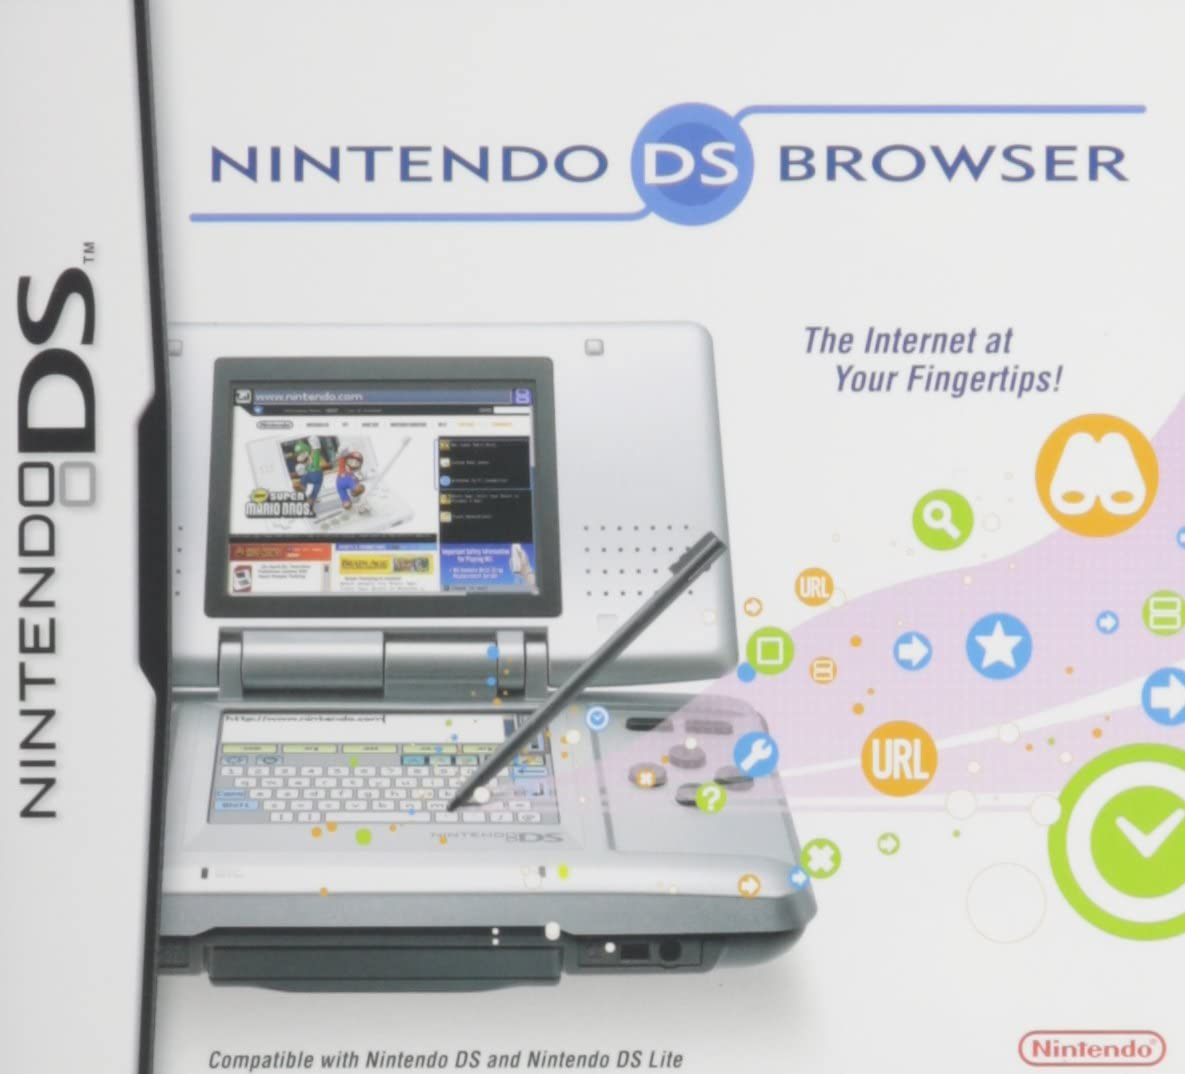 Amazon.com: Nintendo DS Browser: Video Games